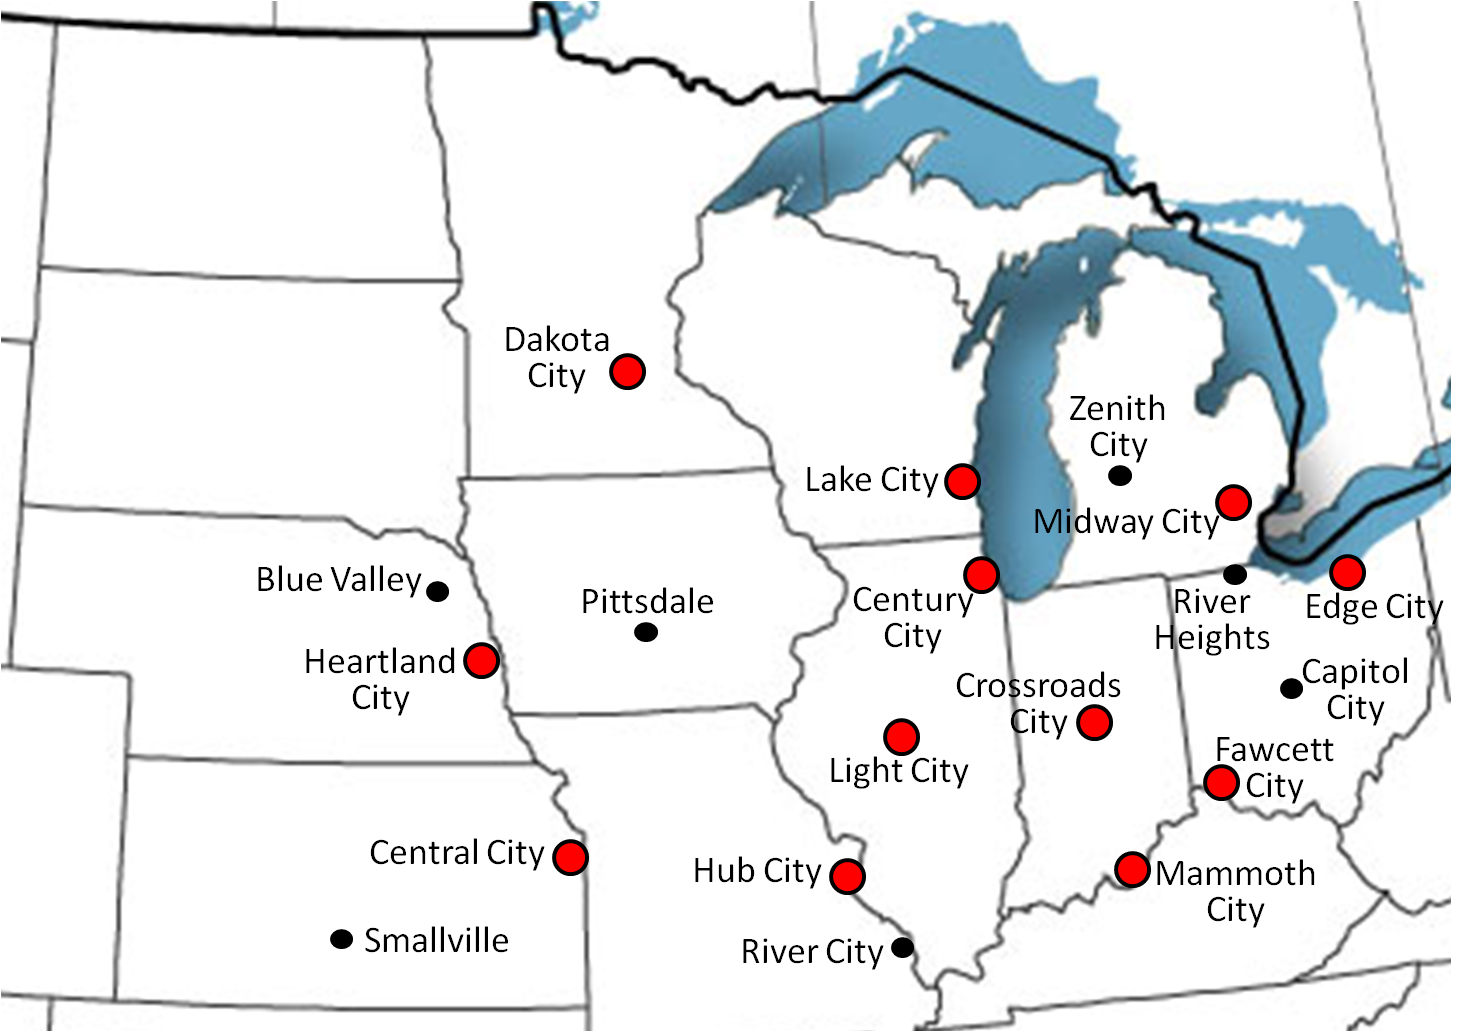 Alien Robot Zombies Atlas Of Fictional Cities In The United States - Us map of midwest states